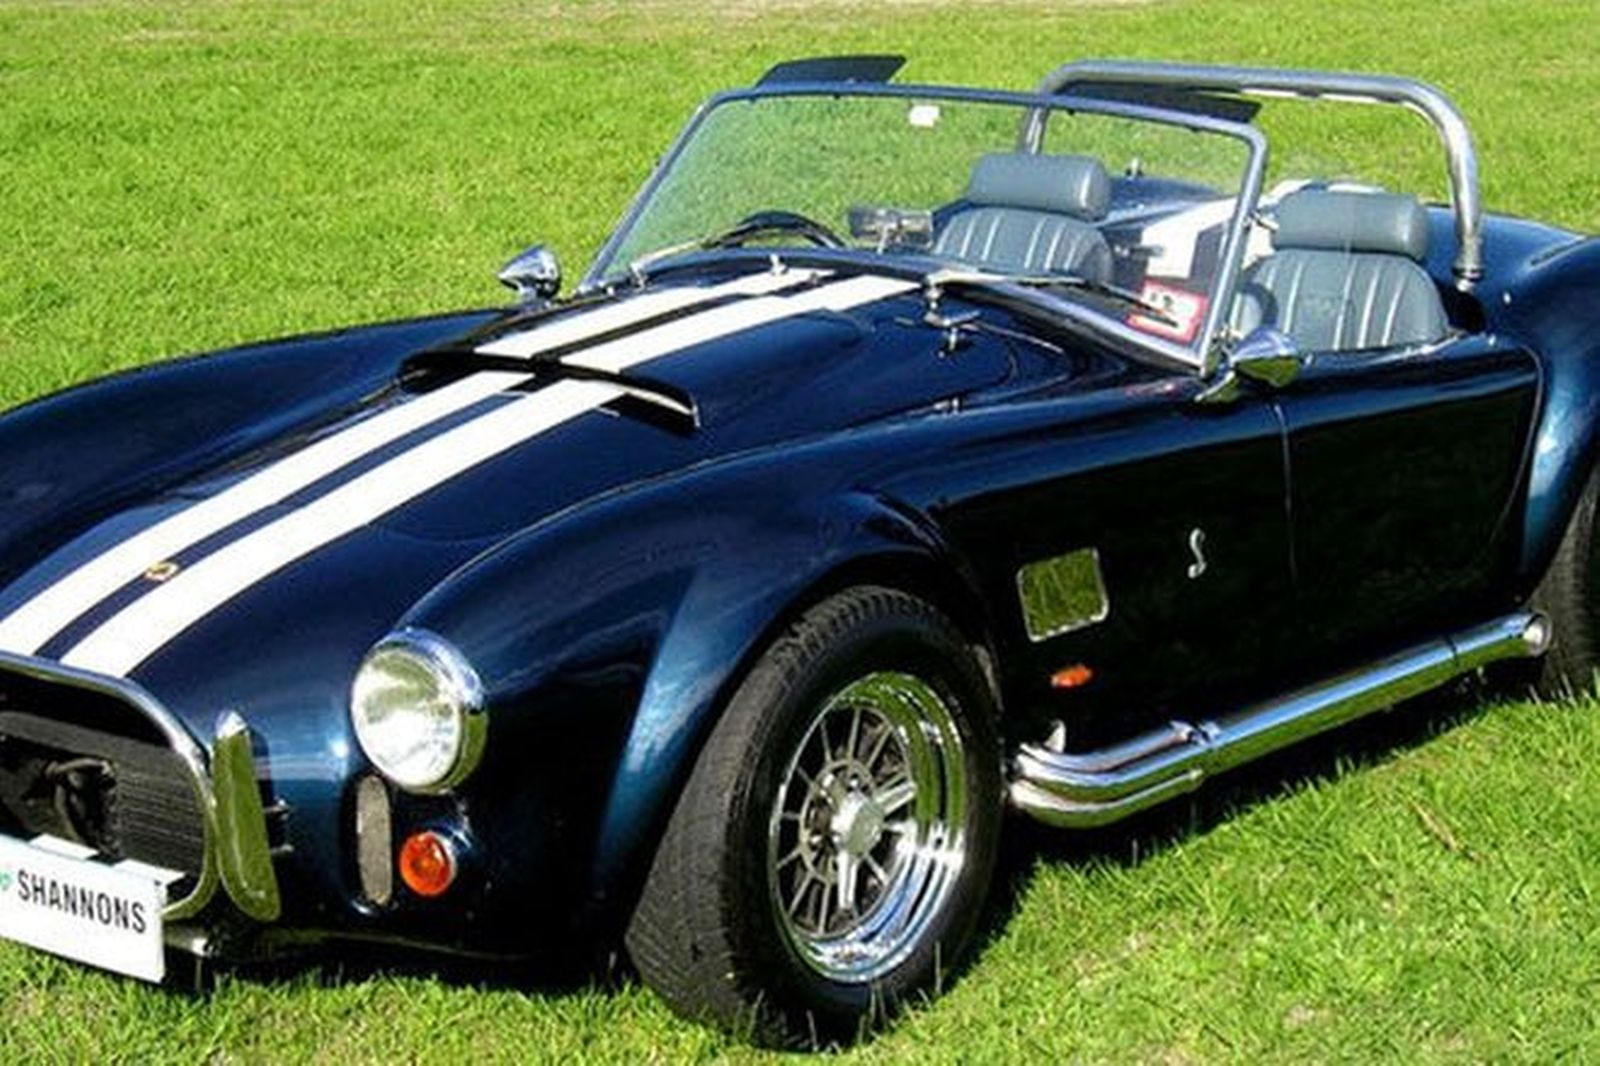 Sold DRB Cobra Replica Roadster Auctions Lot Shannons - Drb sports cars queensland